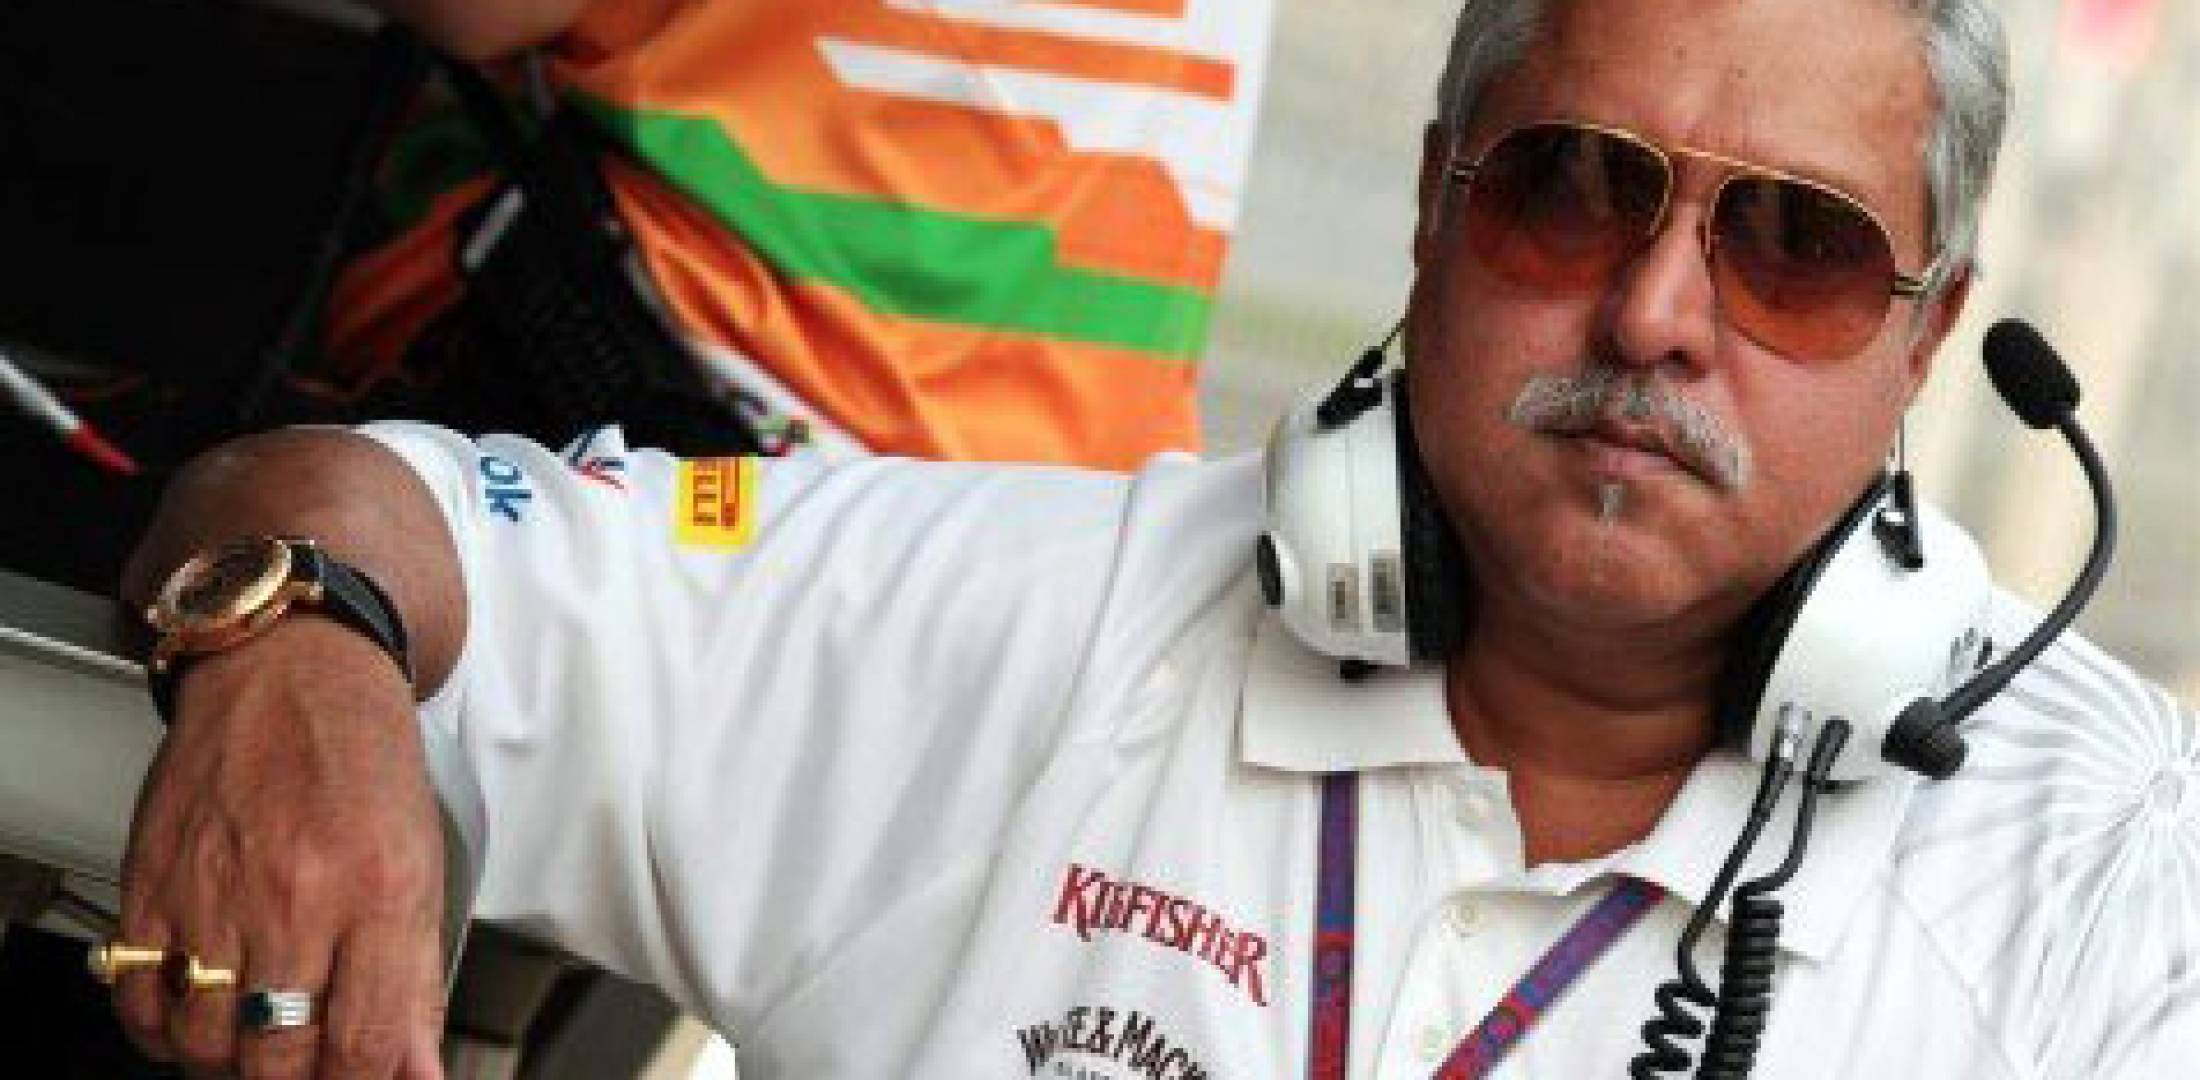 United Breweries Group chairman Vijay Mallya